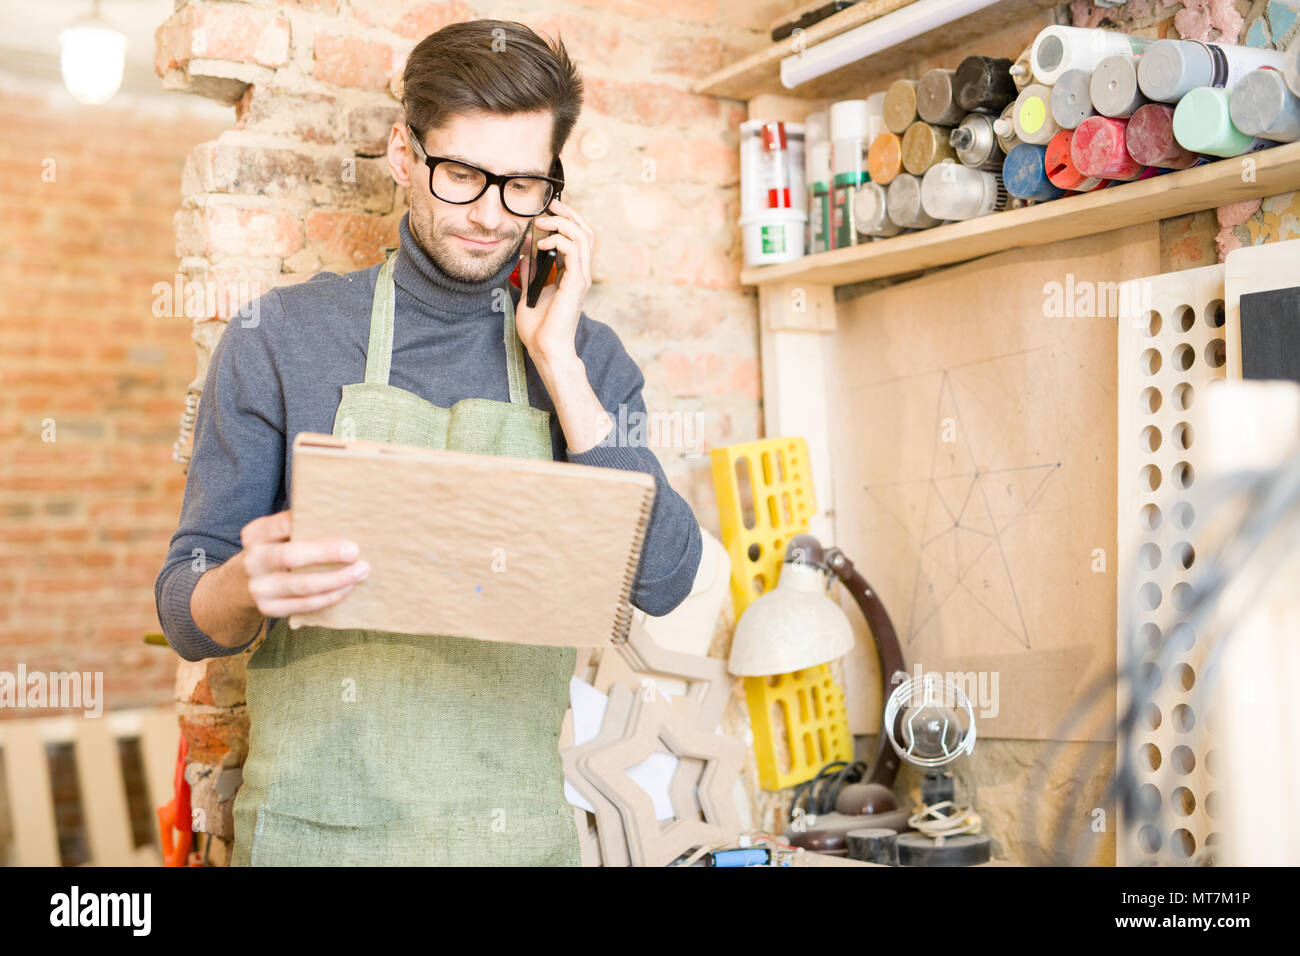 Artisan Speaking by Phone Stock Photo